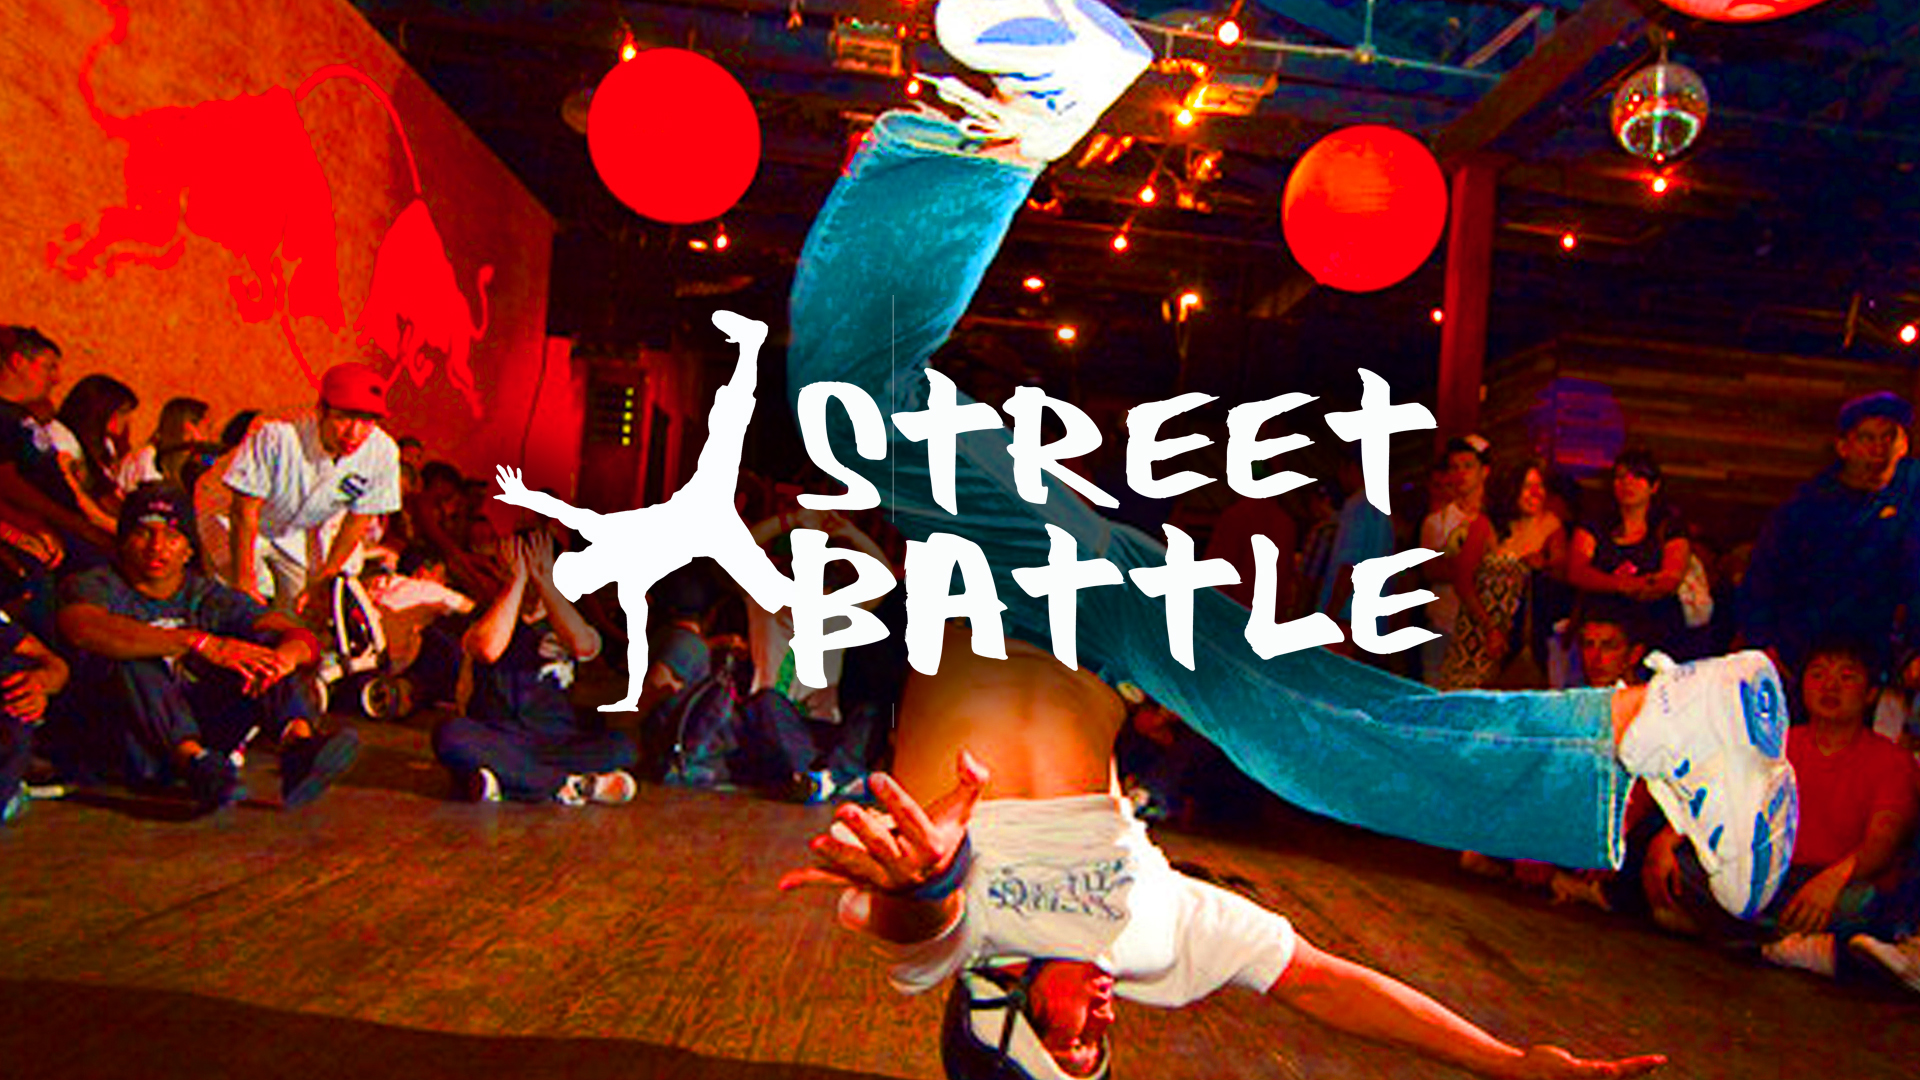 The Street Battle hosts raw energetic and exhilarating elements of street performances by some Australia's best break-dancers, beatboxers, rappers and hip hop talents.